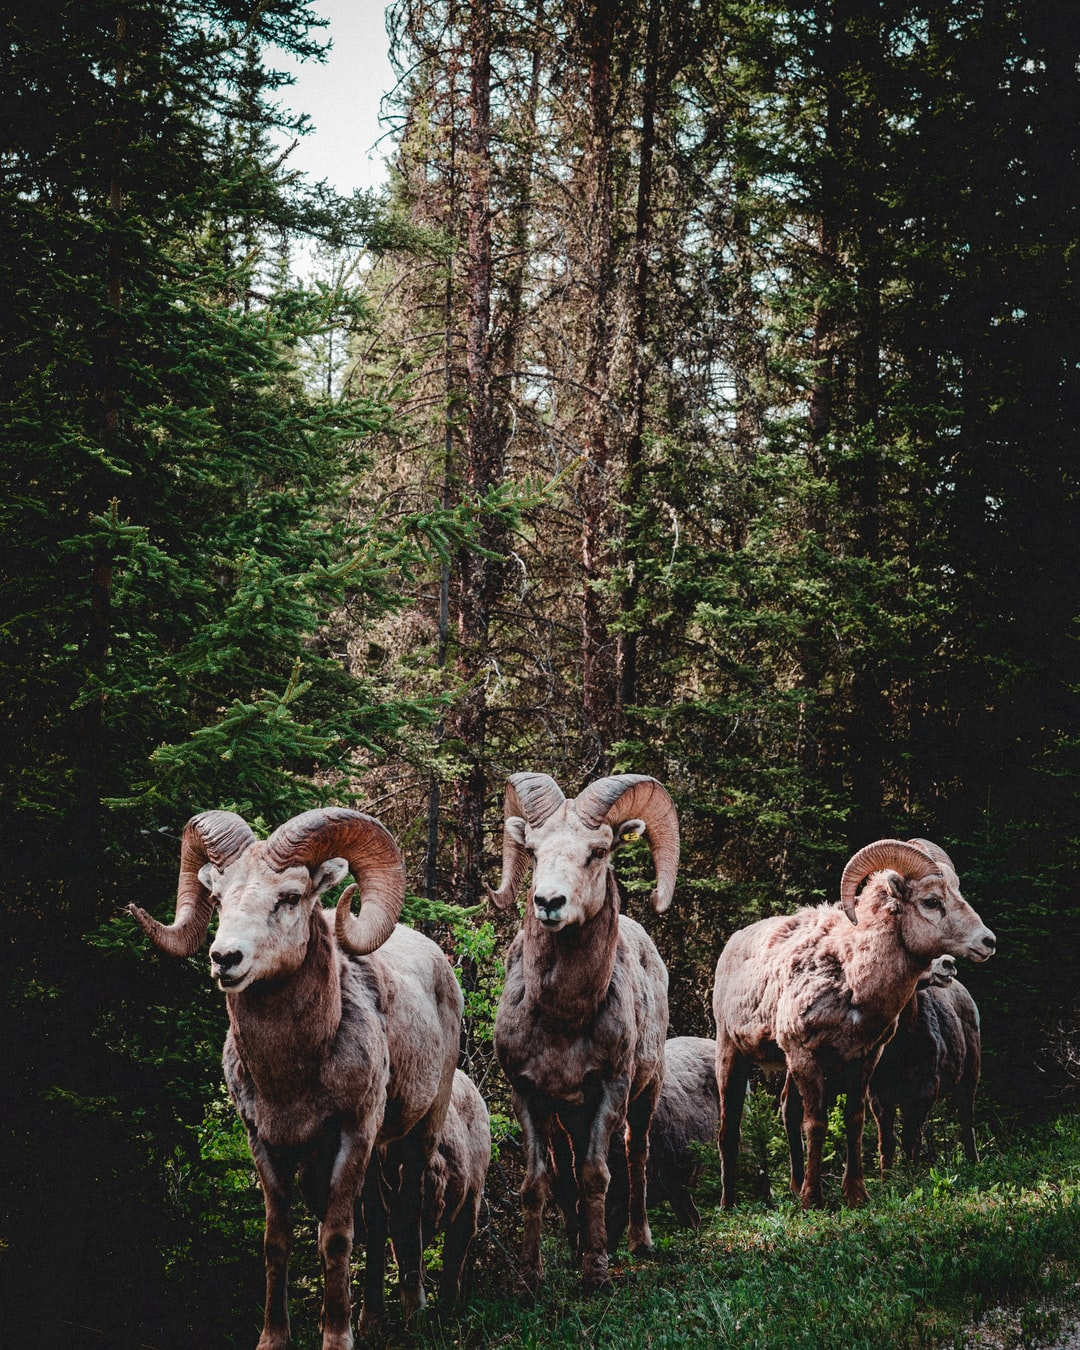 While driving along the Bow Valley Parkway in Banff I came across this beautiful herd of Rams.